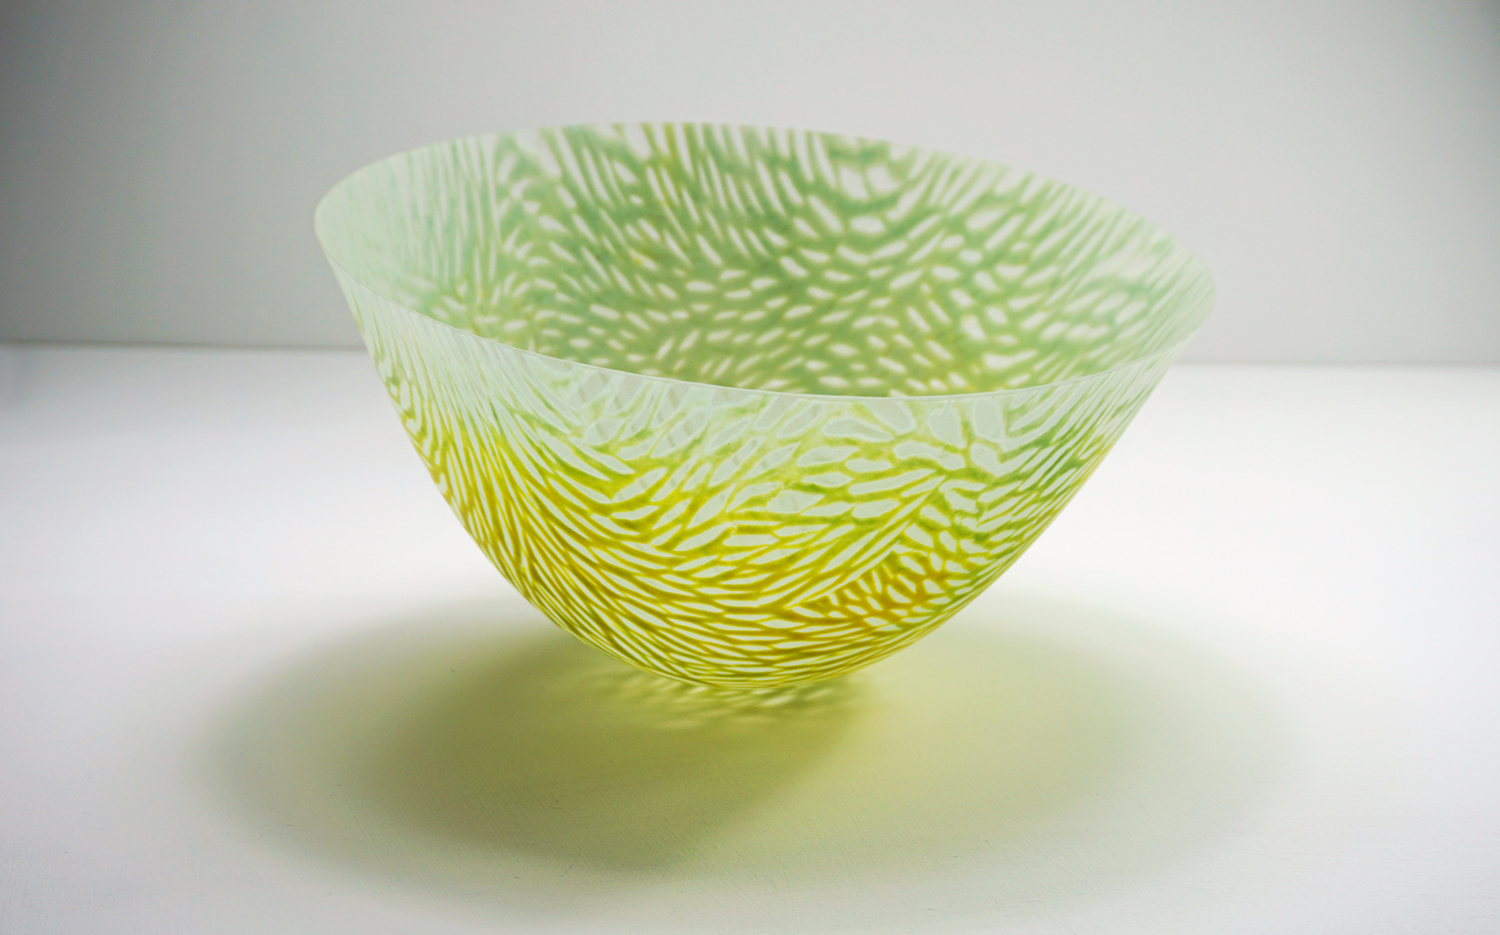 The Best of Glass Sculpture and Glasswork Art: Amanda Simmons glasswork The Best of Glass Sculpture and Glasswork Art: Amanda Simmons Amanda Simmons Acrotelm I